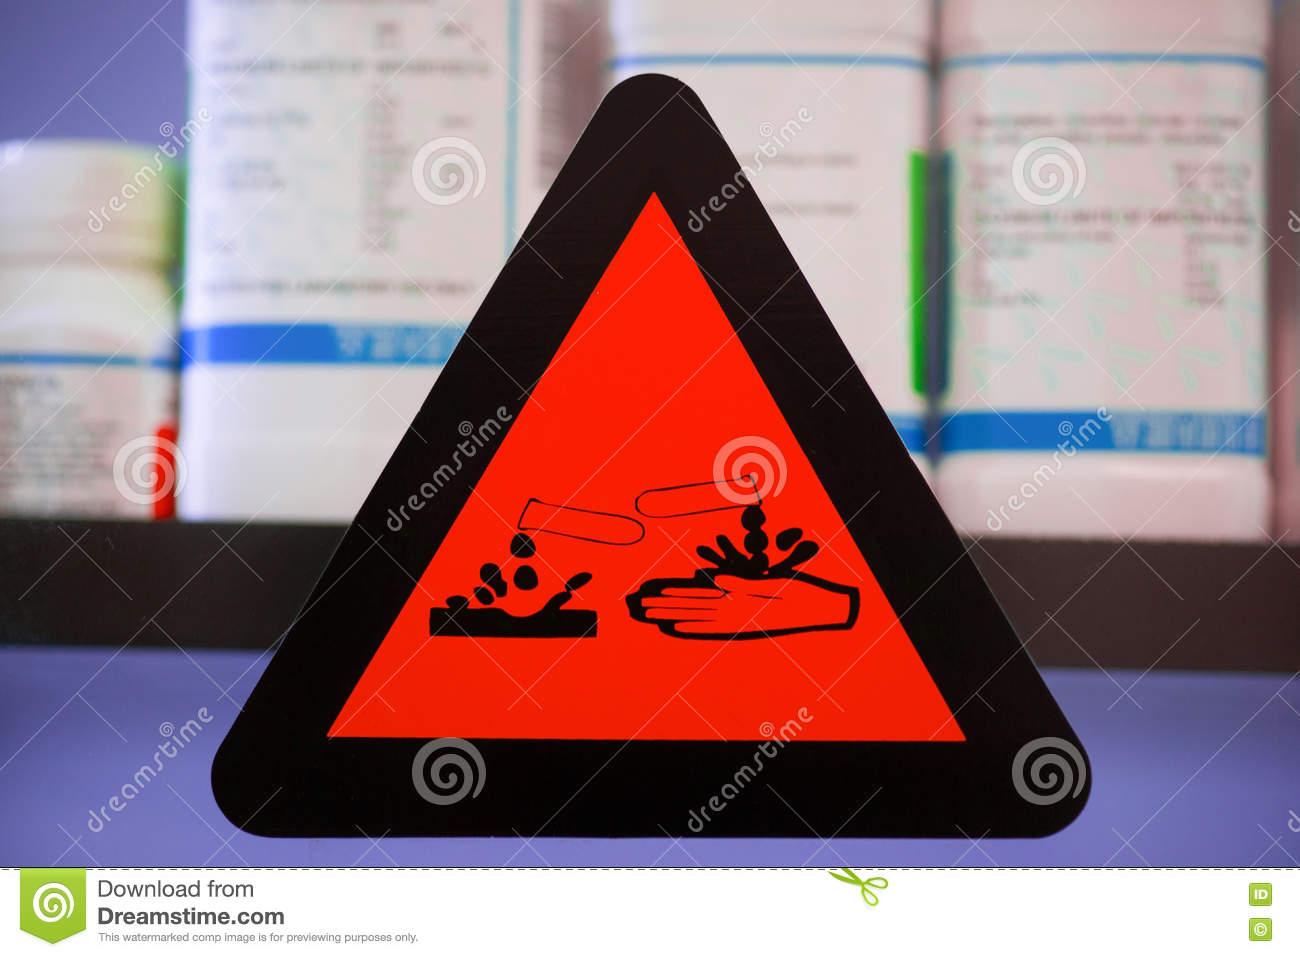 Label Corrosive Chemicals Stock Image Image Of Painted 79014631